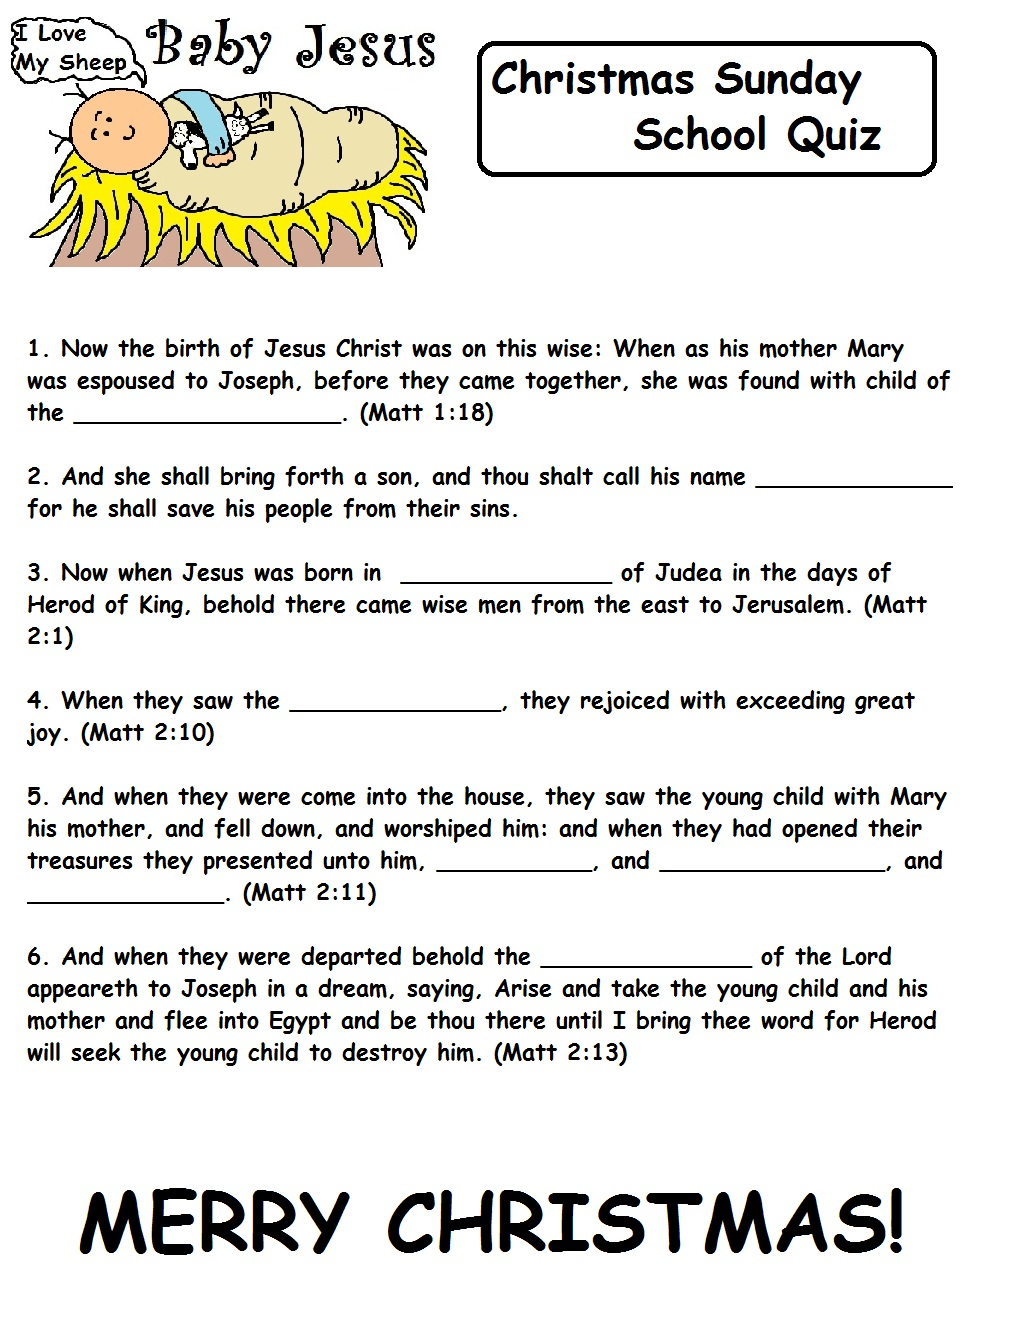 32 Fun Bible Trivia Questions   KittyBabyLove.com